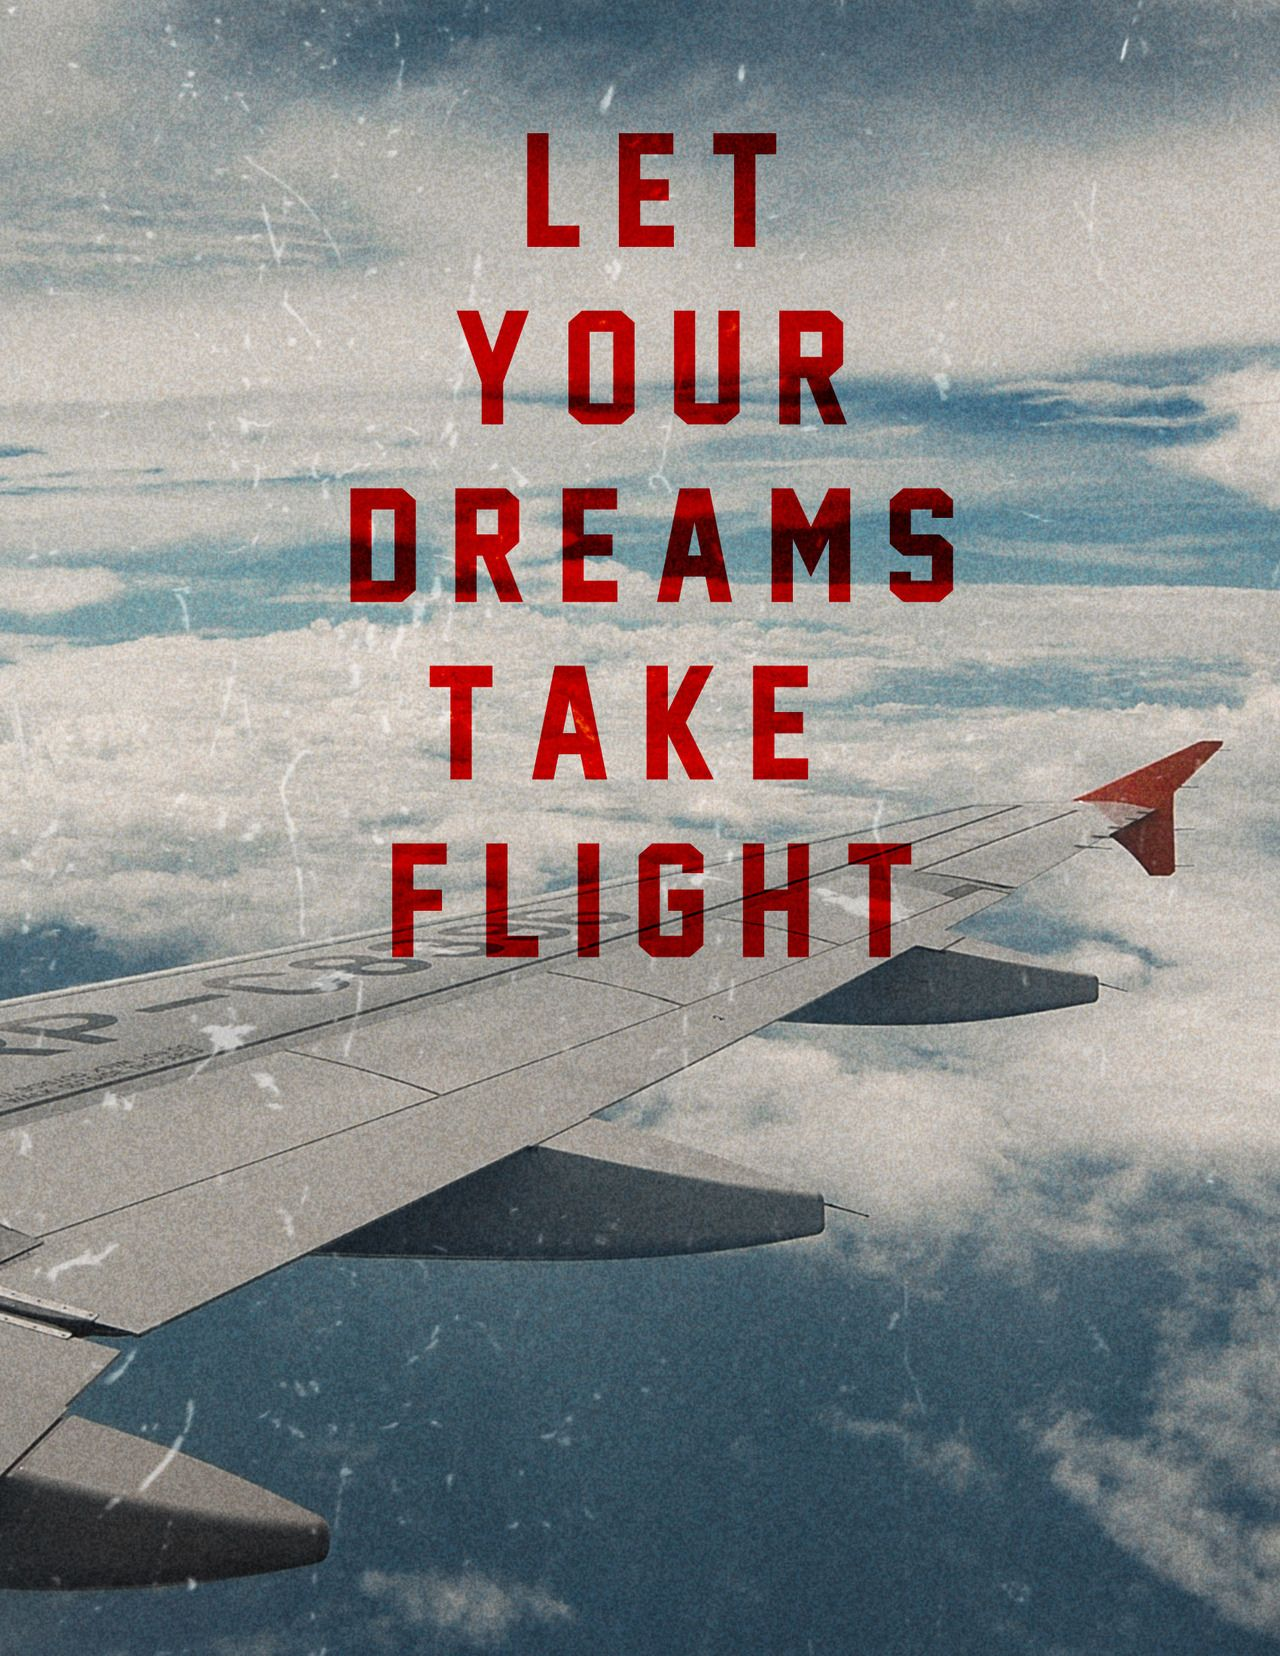 Flying Quotes Interesting Inspirational Quotes To Motivate And Share  Only Words